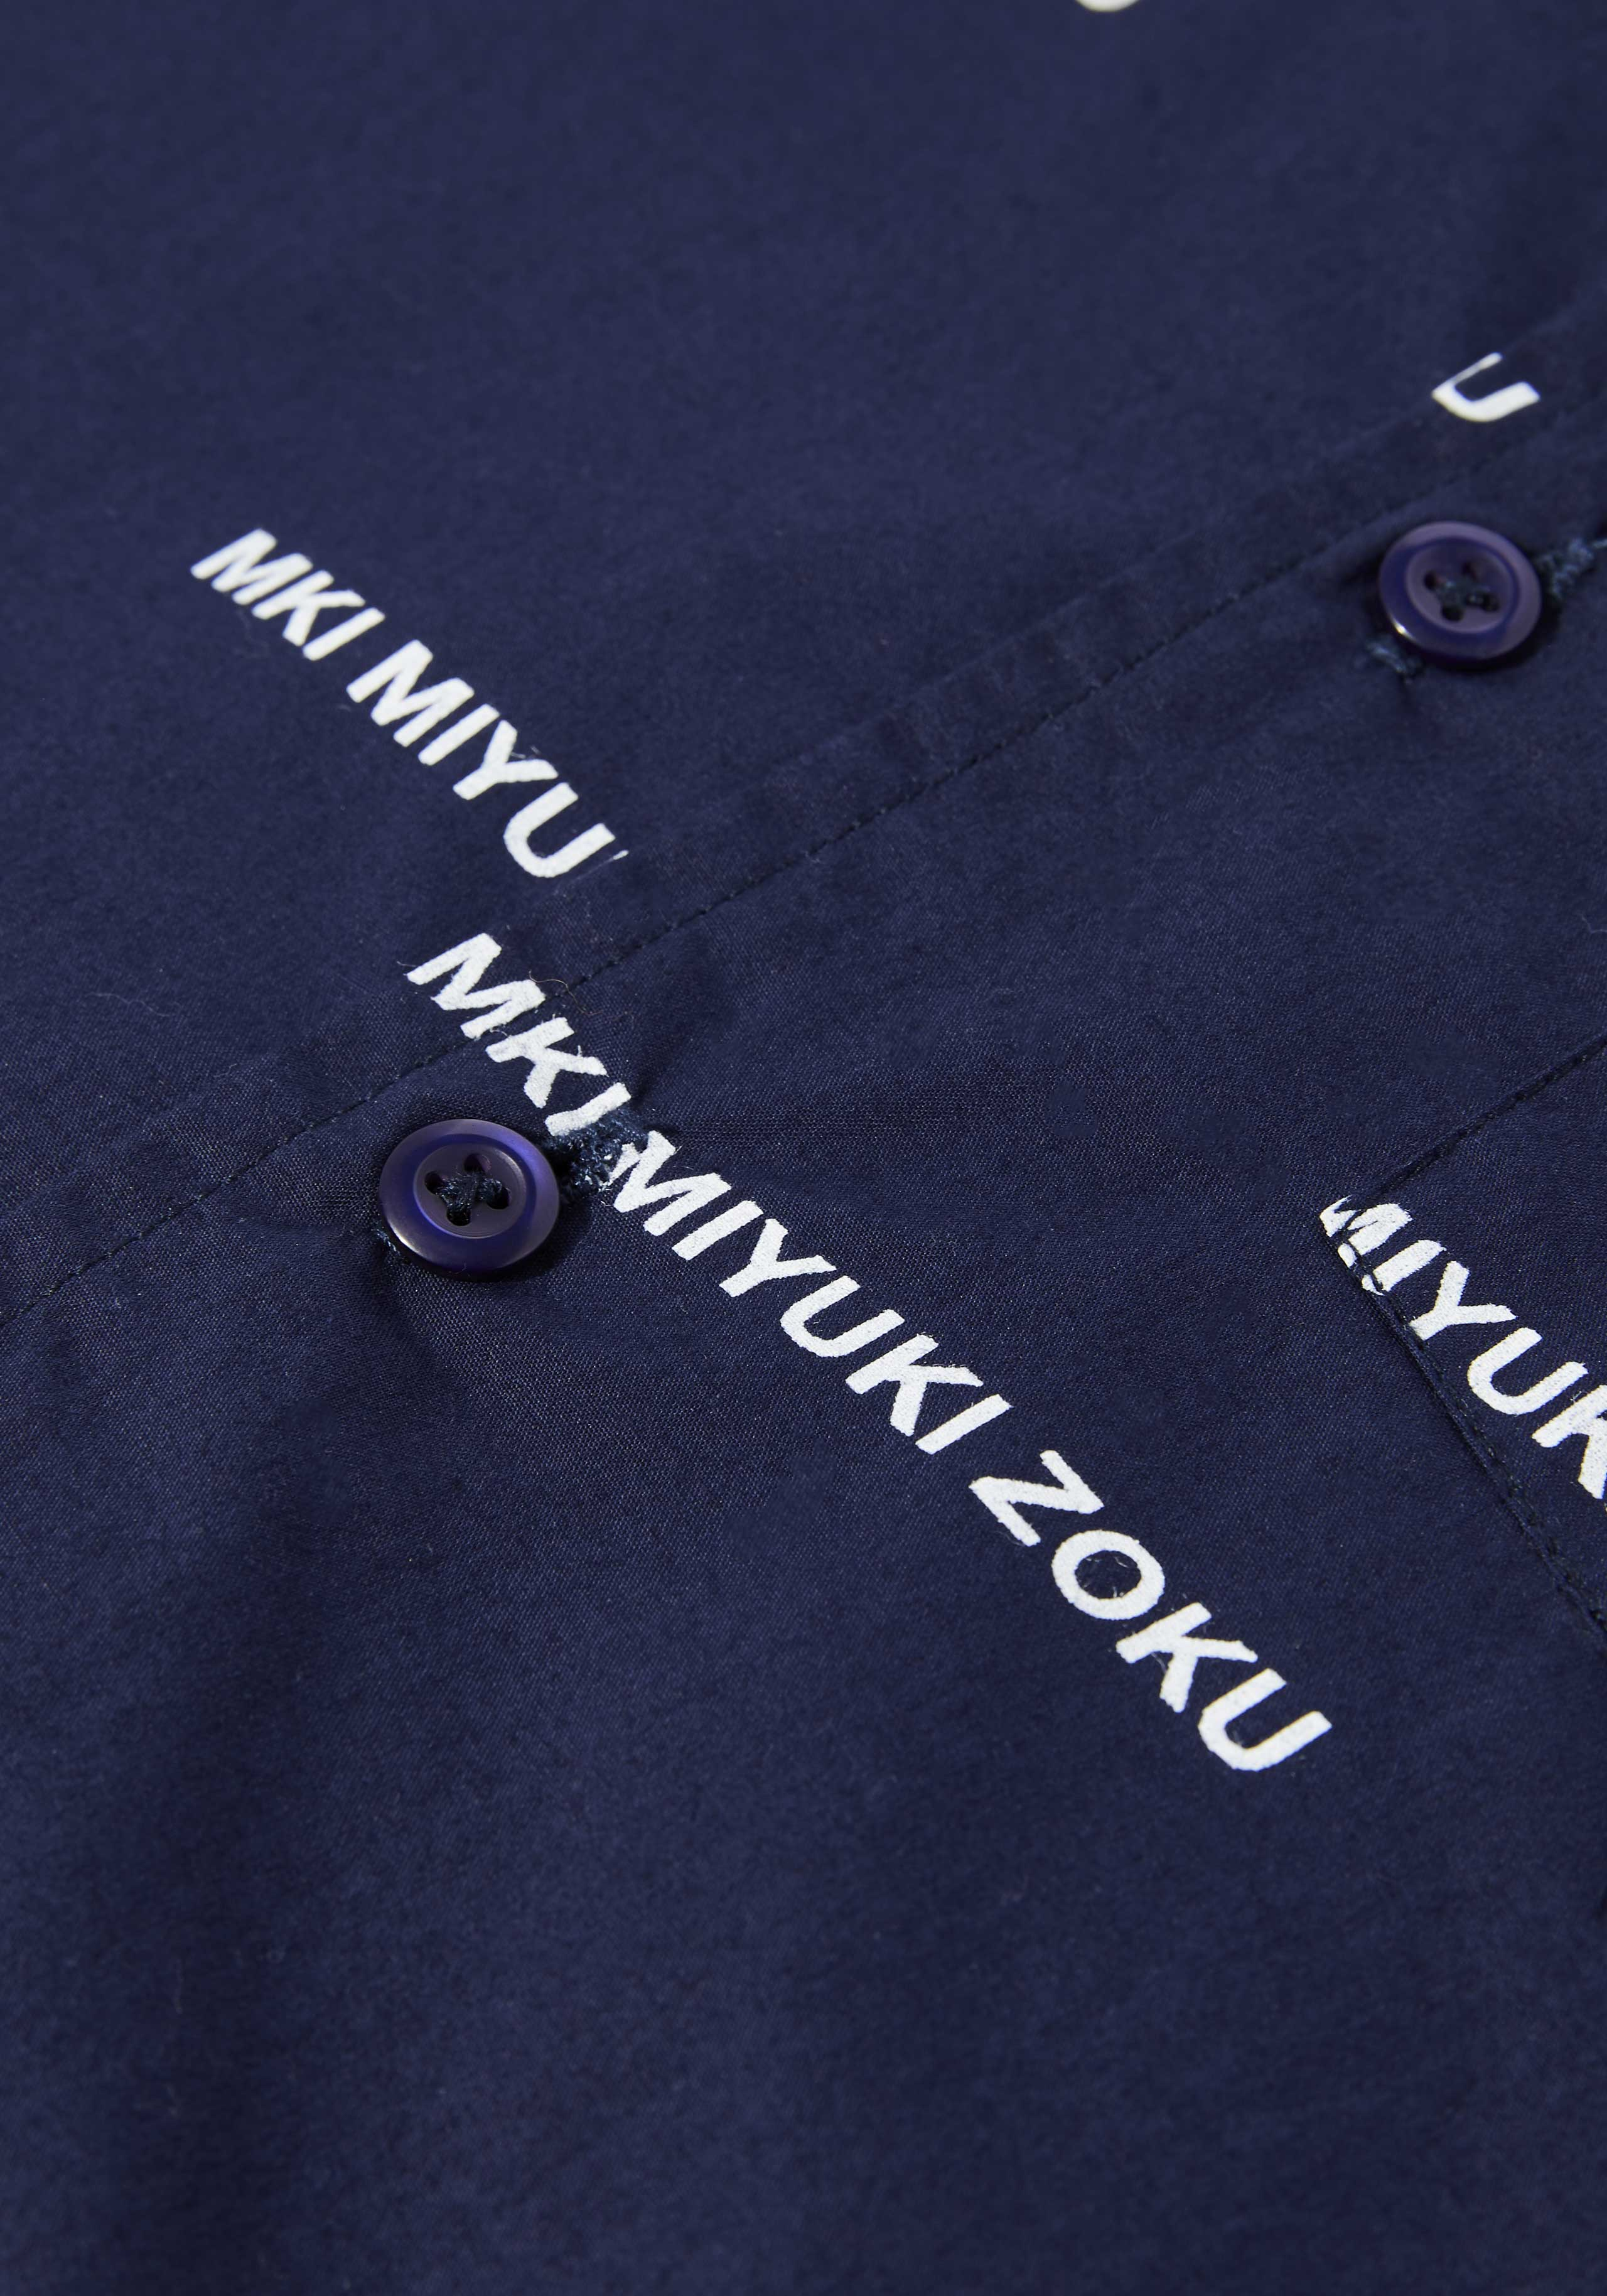 mki logo vacation shirt 6